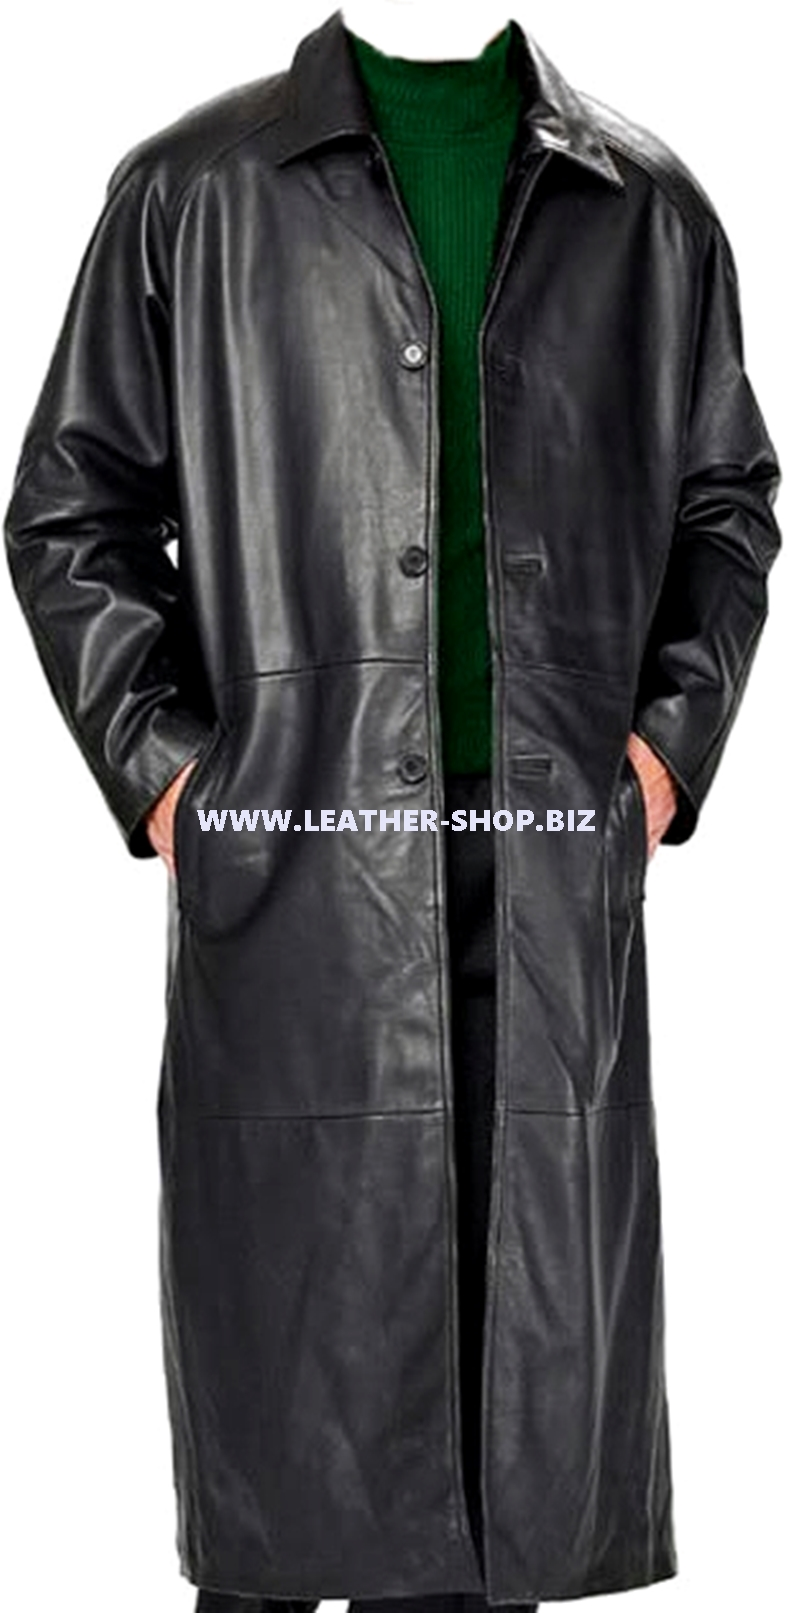 men-s-leather-trench-coat-custom-made-style-mtc689-www.leather-shop.biz-front-image.jpg